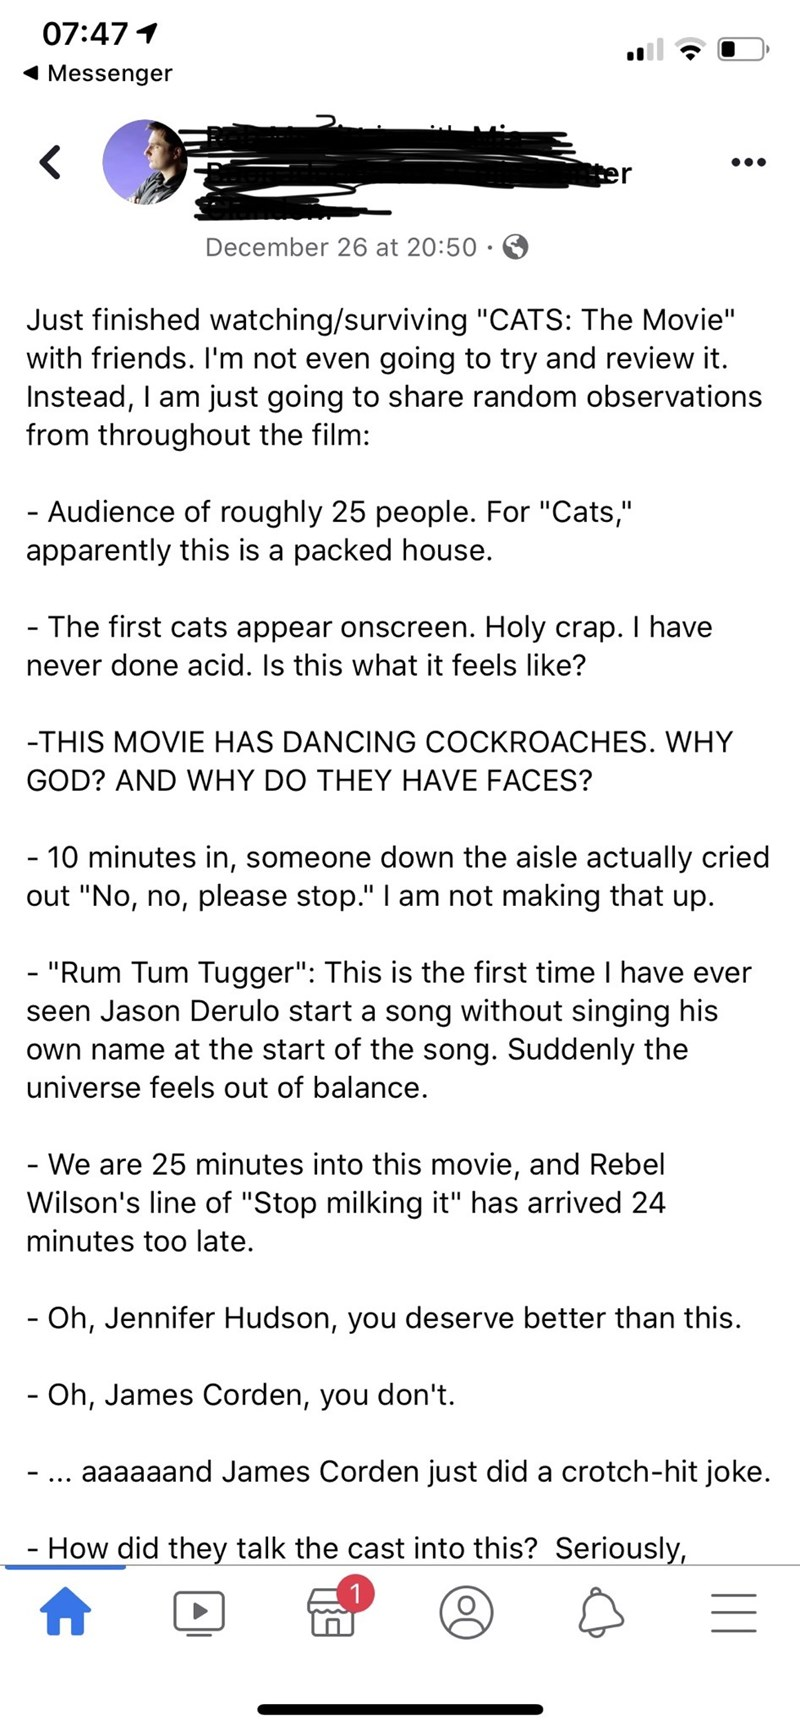 """Text - 07:47 1 Messenger er December 26 at 20:50 · E Just finished watching/surviving """"CATS: The Movie"""" with friends. I'm not even going to try and review it. Instead, I am just going to share random observations from throughout the film: - Audience of roughly 25 people. For """"Cats,"""" apparently this is a packed house. - The first cats appear onscreen. Holy crap. I have never done acid. Is this what it feels like? -THIS MOVIE HAS DANCING COCKROACHES. WHY GOD? AND WHY DO THEY HAVE FACES? - 10 minut"""